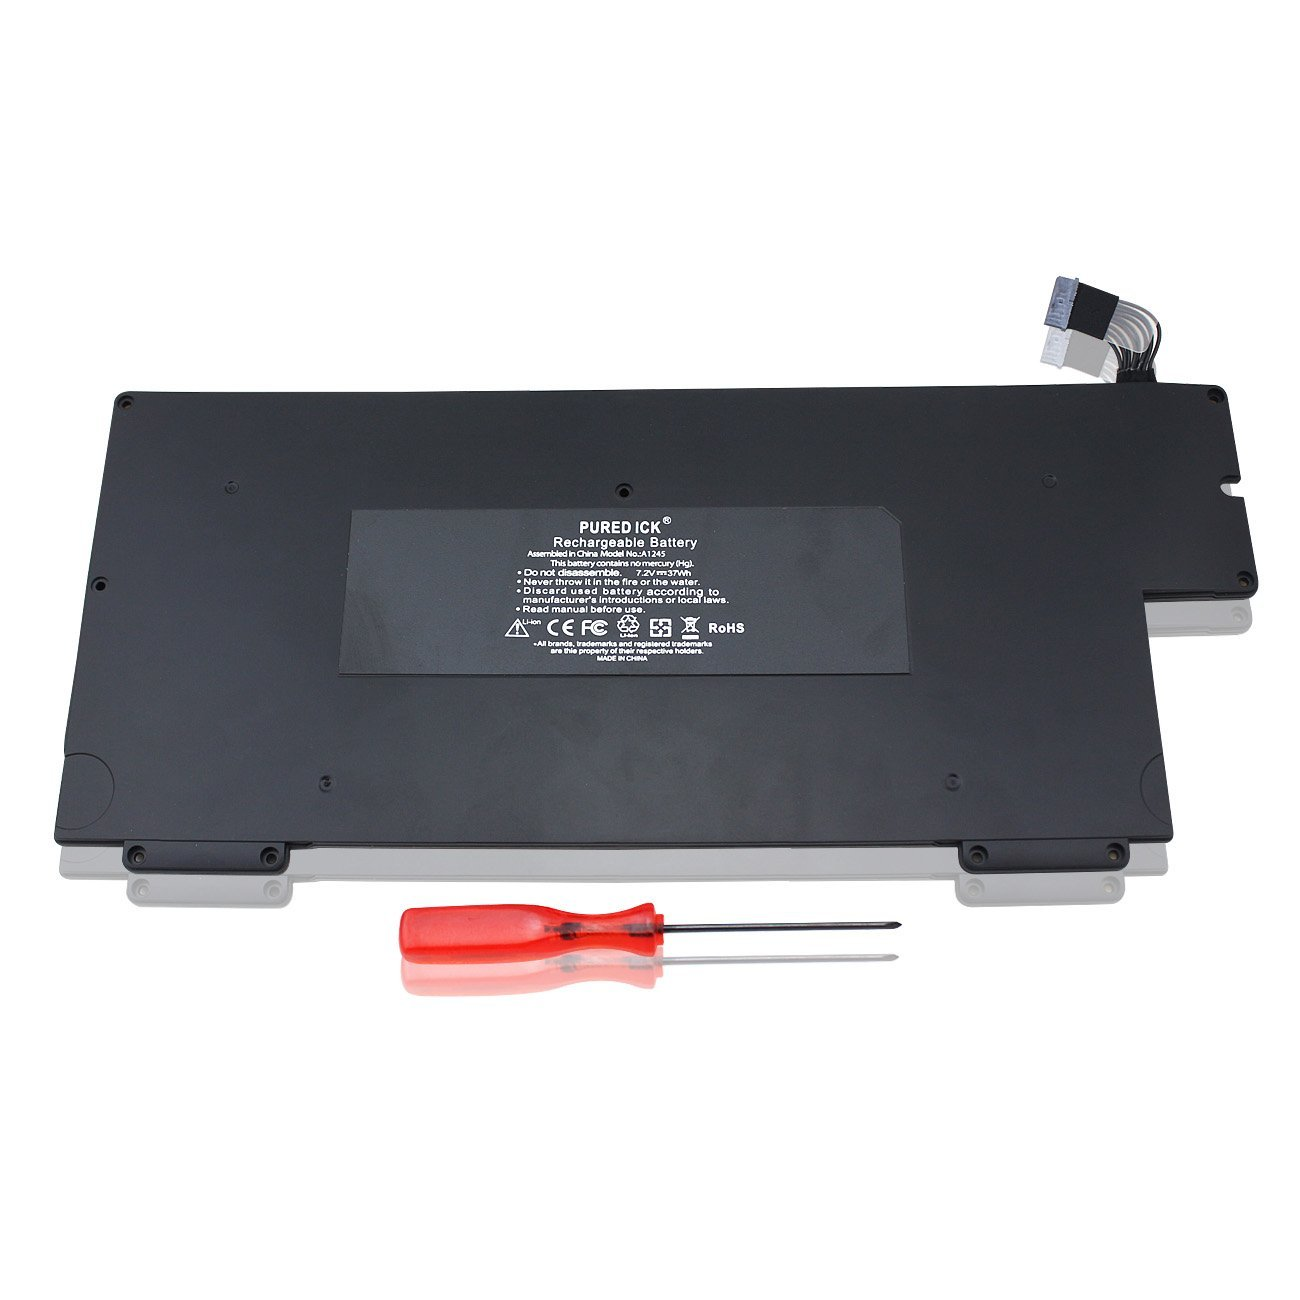 """Puredick® New Apple MacBook Air 13 Inch Battery A1245 A1237 A1304, Apple MacBook Air 13"""" MB003 MC233 MC234 MC503 MC504, 661-4587 661-4915 661-519 - 12 Months Warranty [Li-Polymer 4-cell 7.2V 37Wh]"""